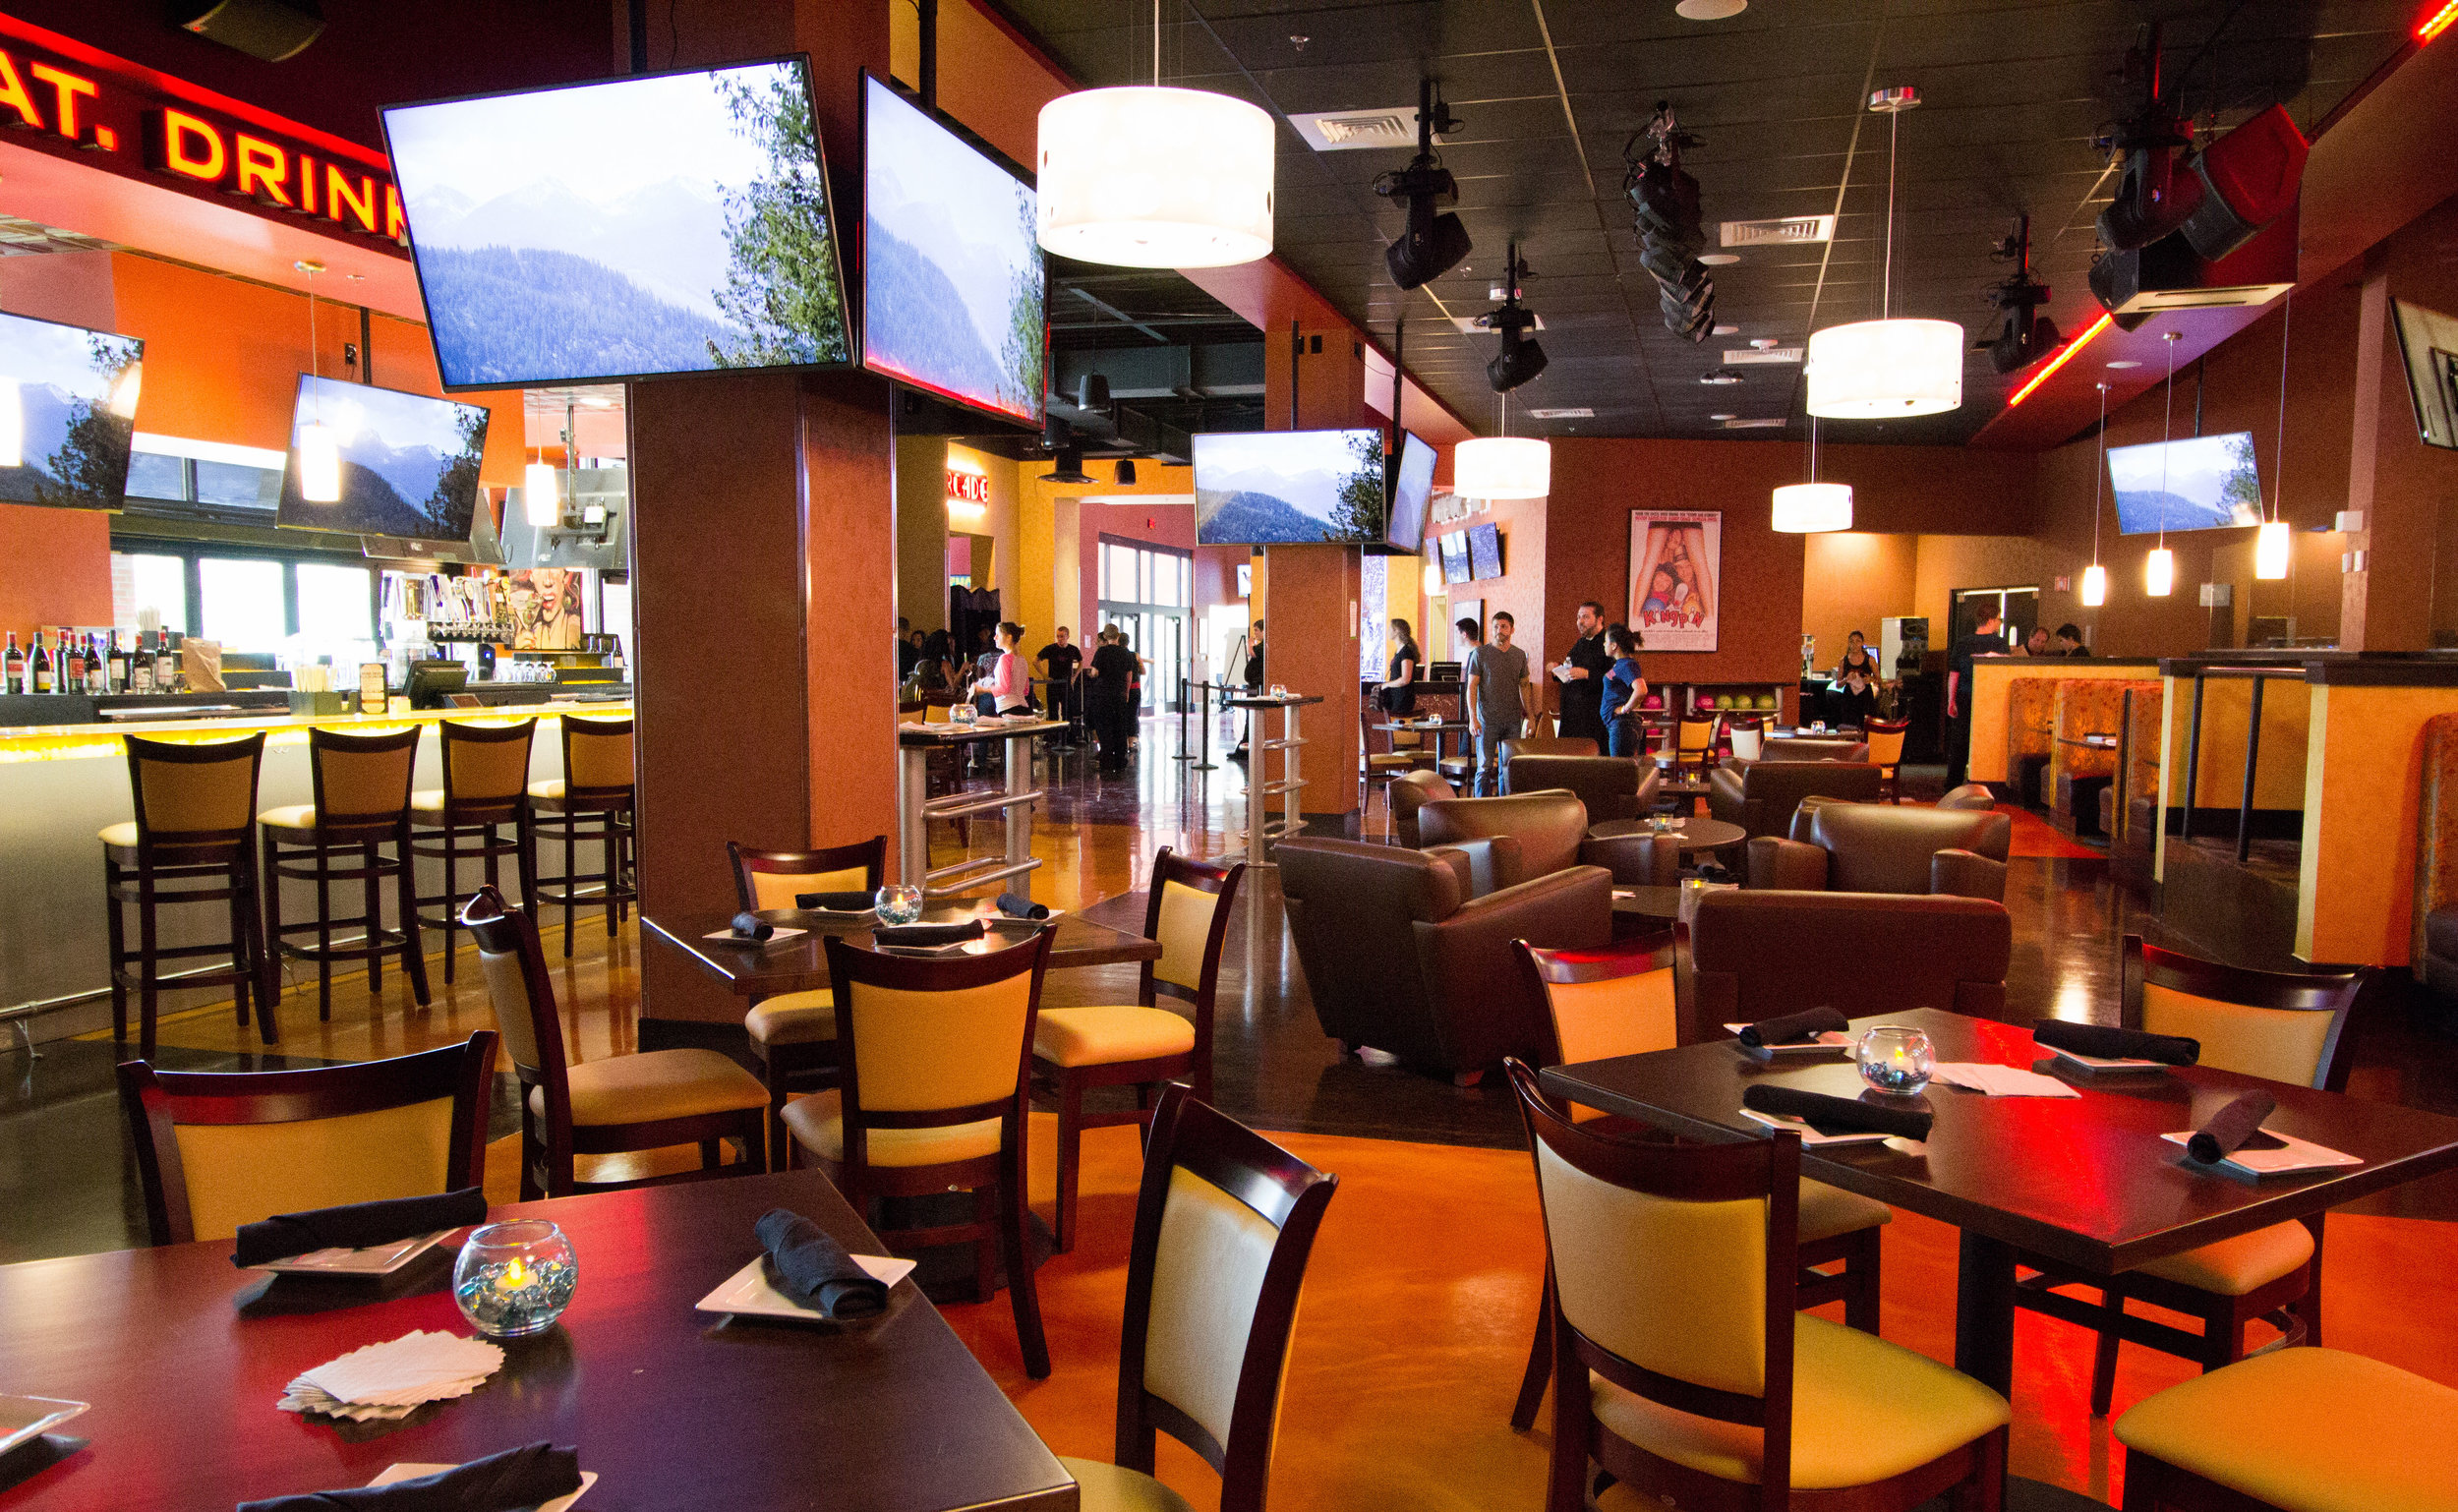 ADW-Entertainment-CineBowl-Grille-Cary-NC-5.jpg